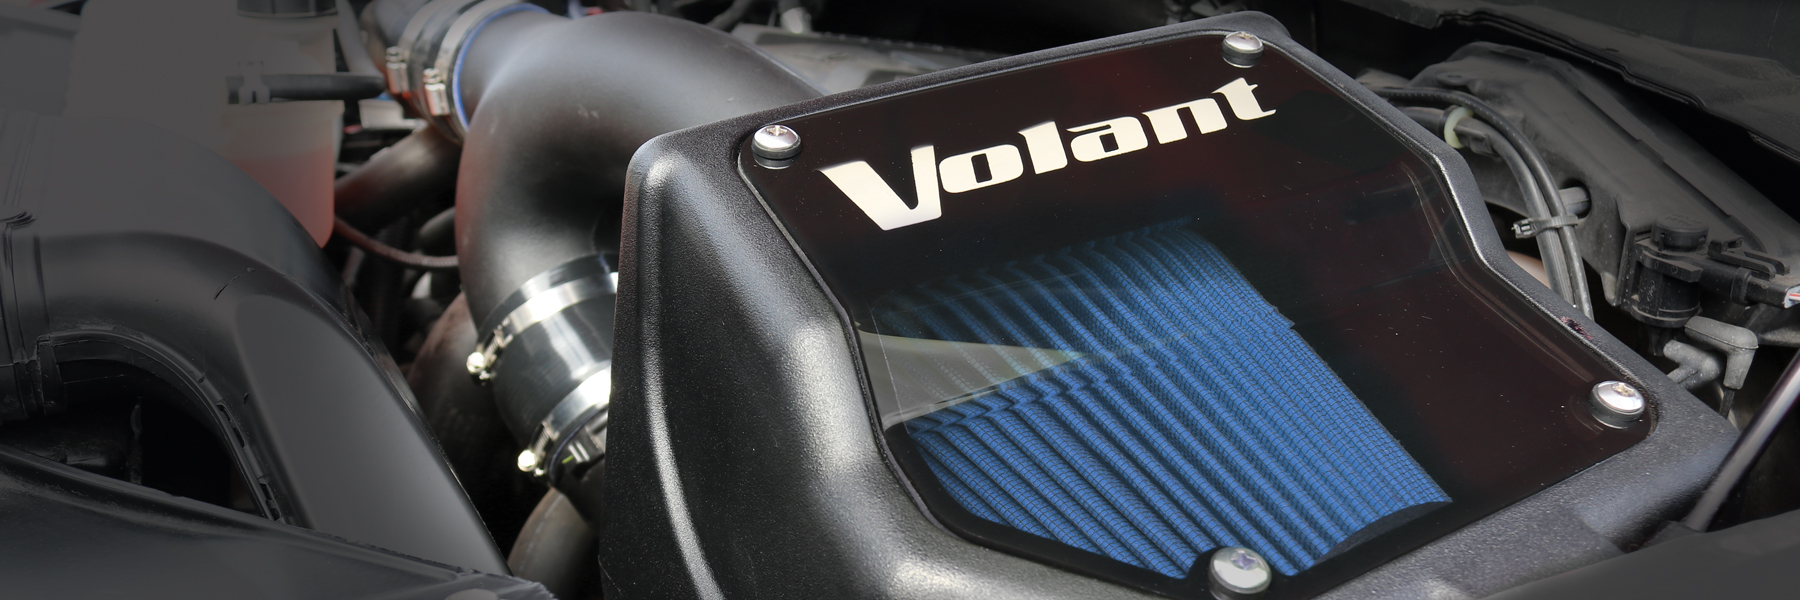 Volant Closed Box Air Intakes